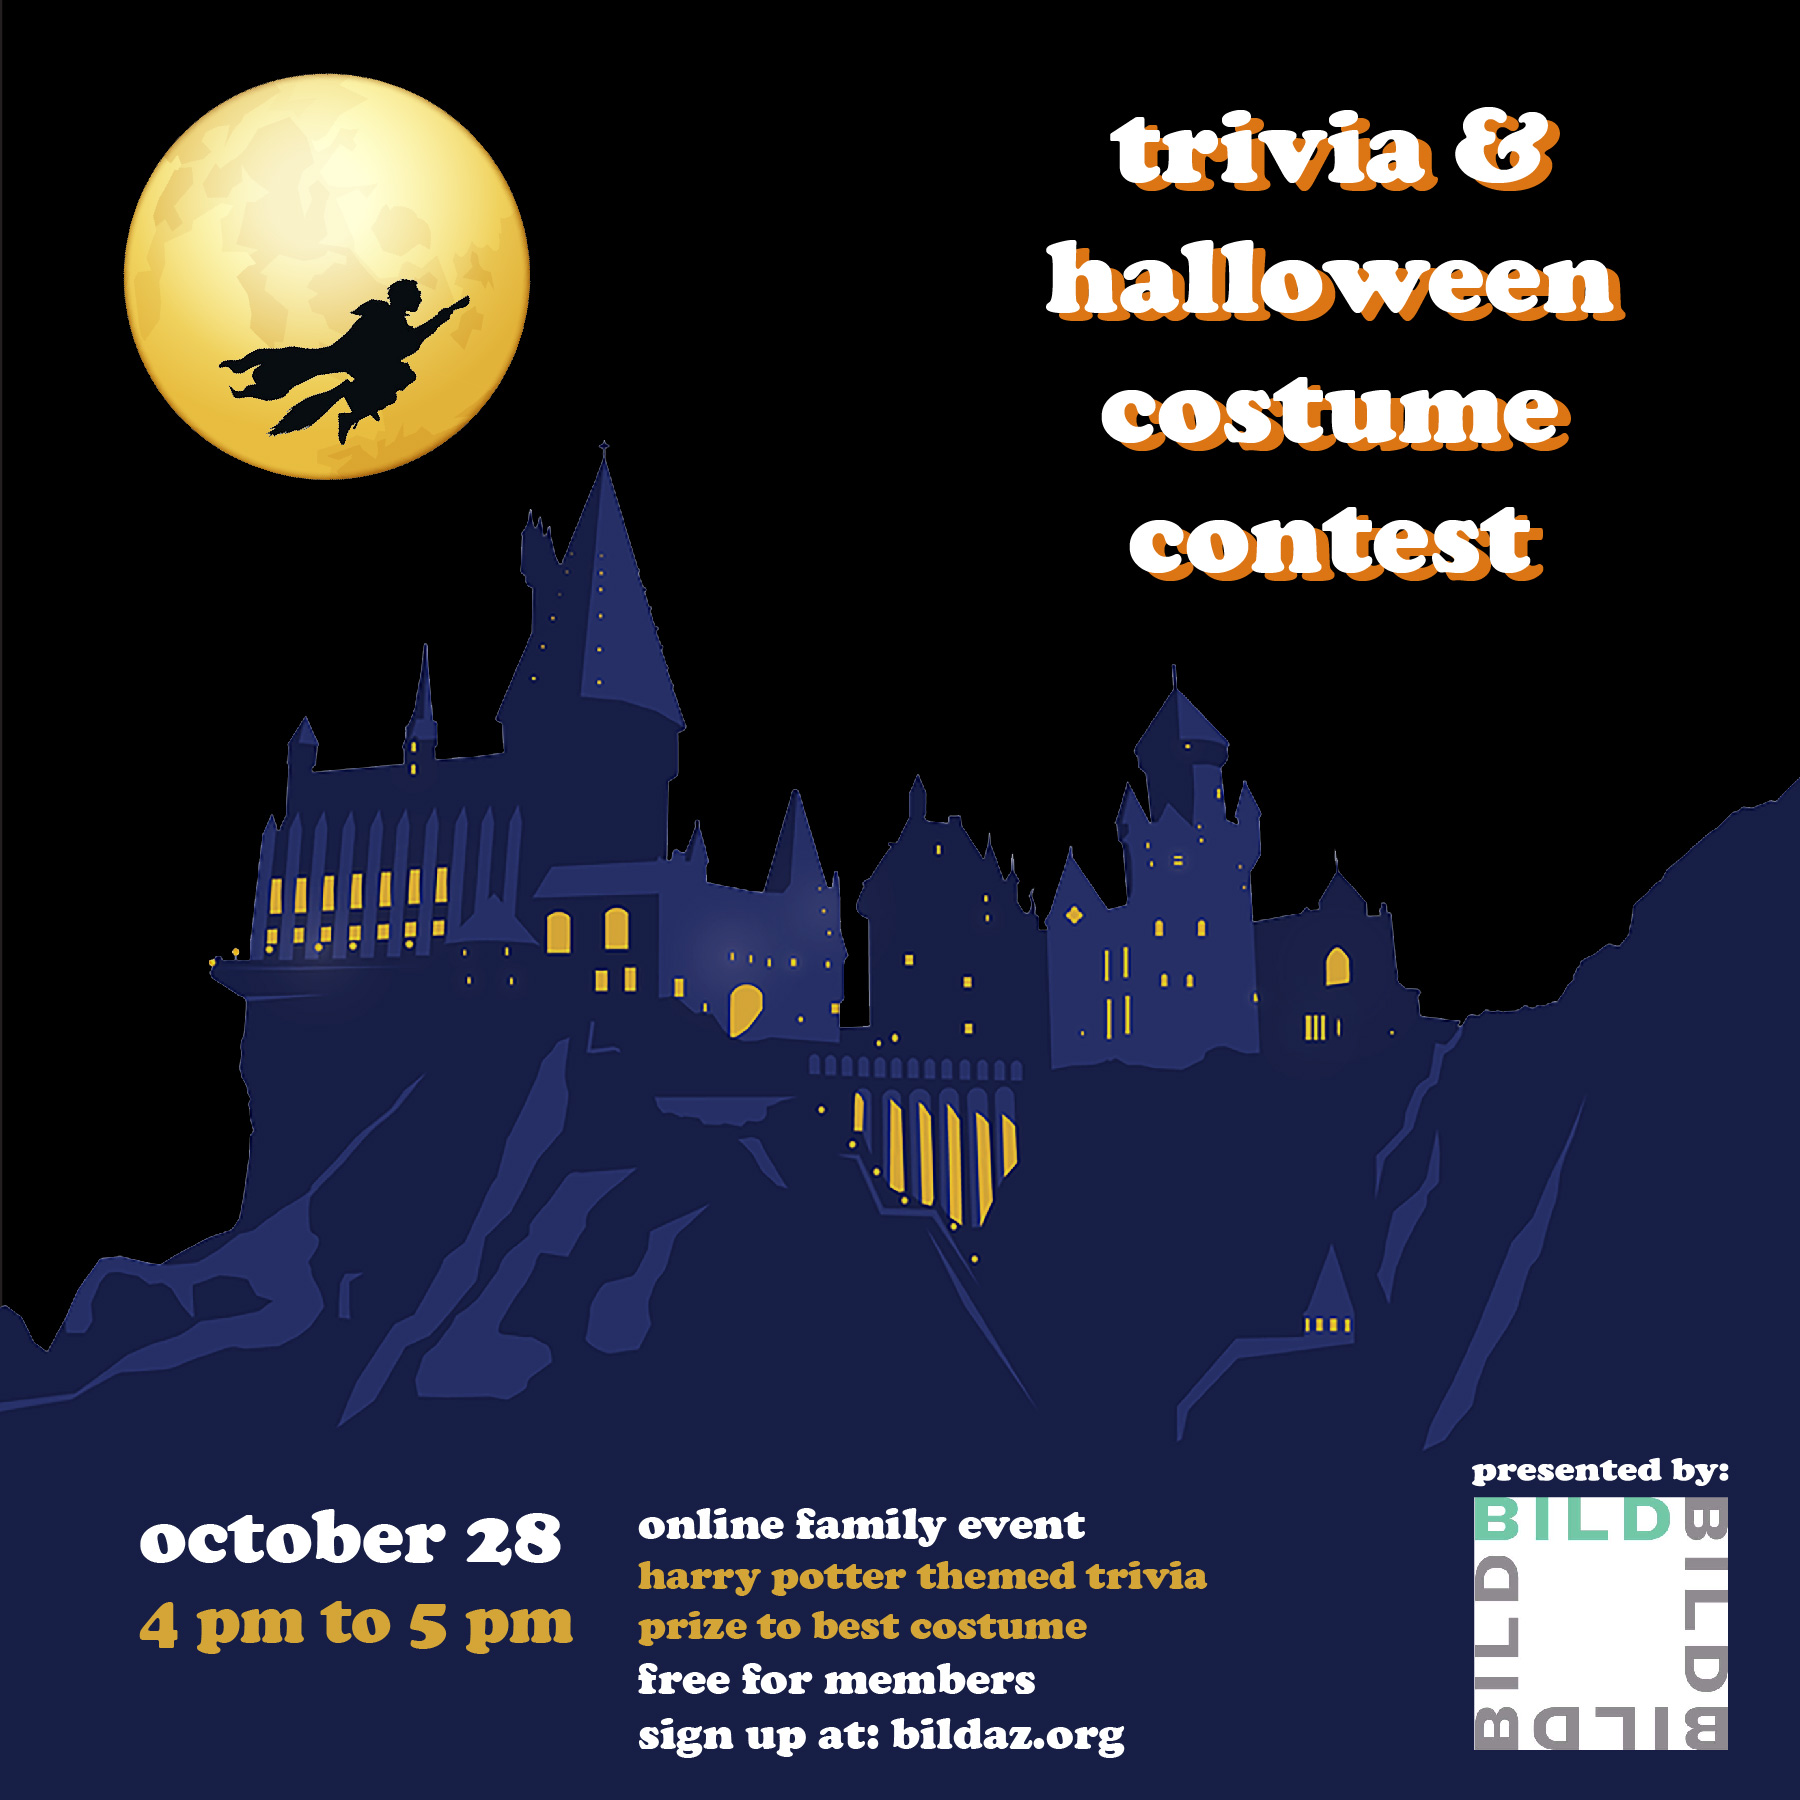 Harry Potter Trivia & Halloween Costume Contest